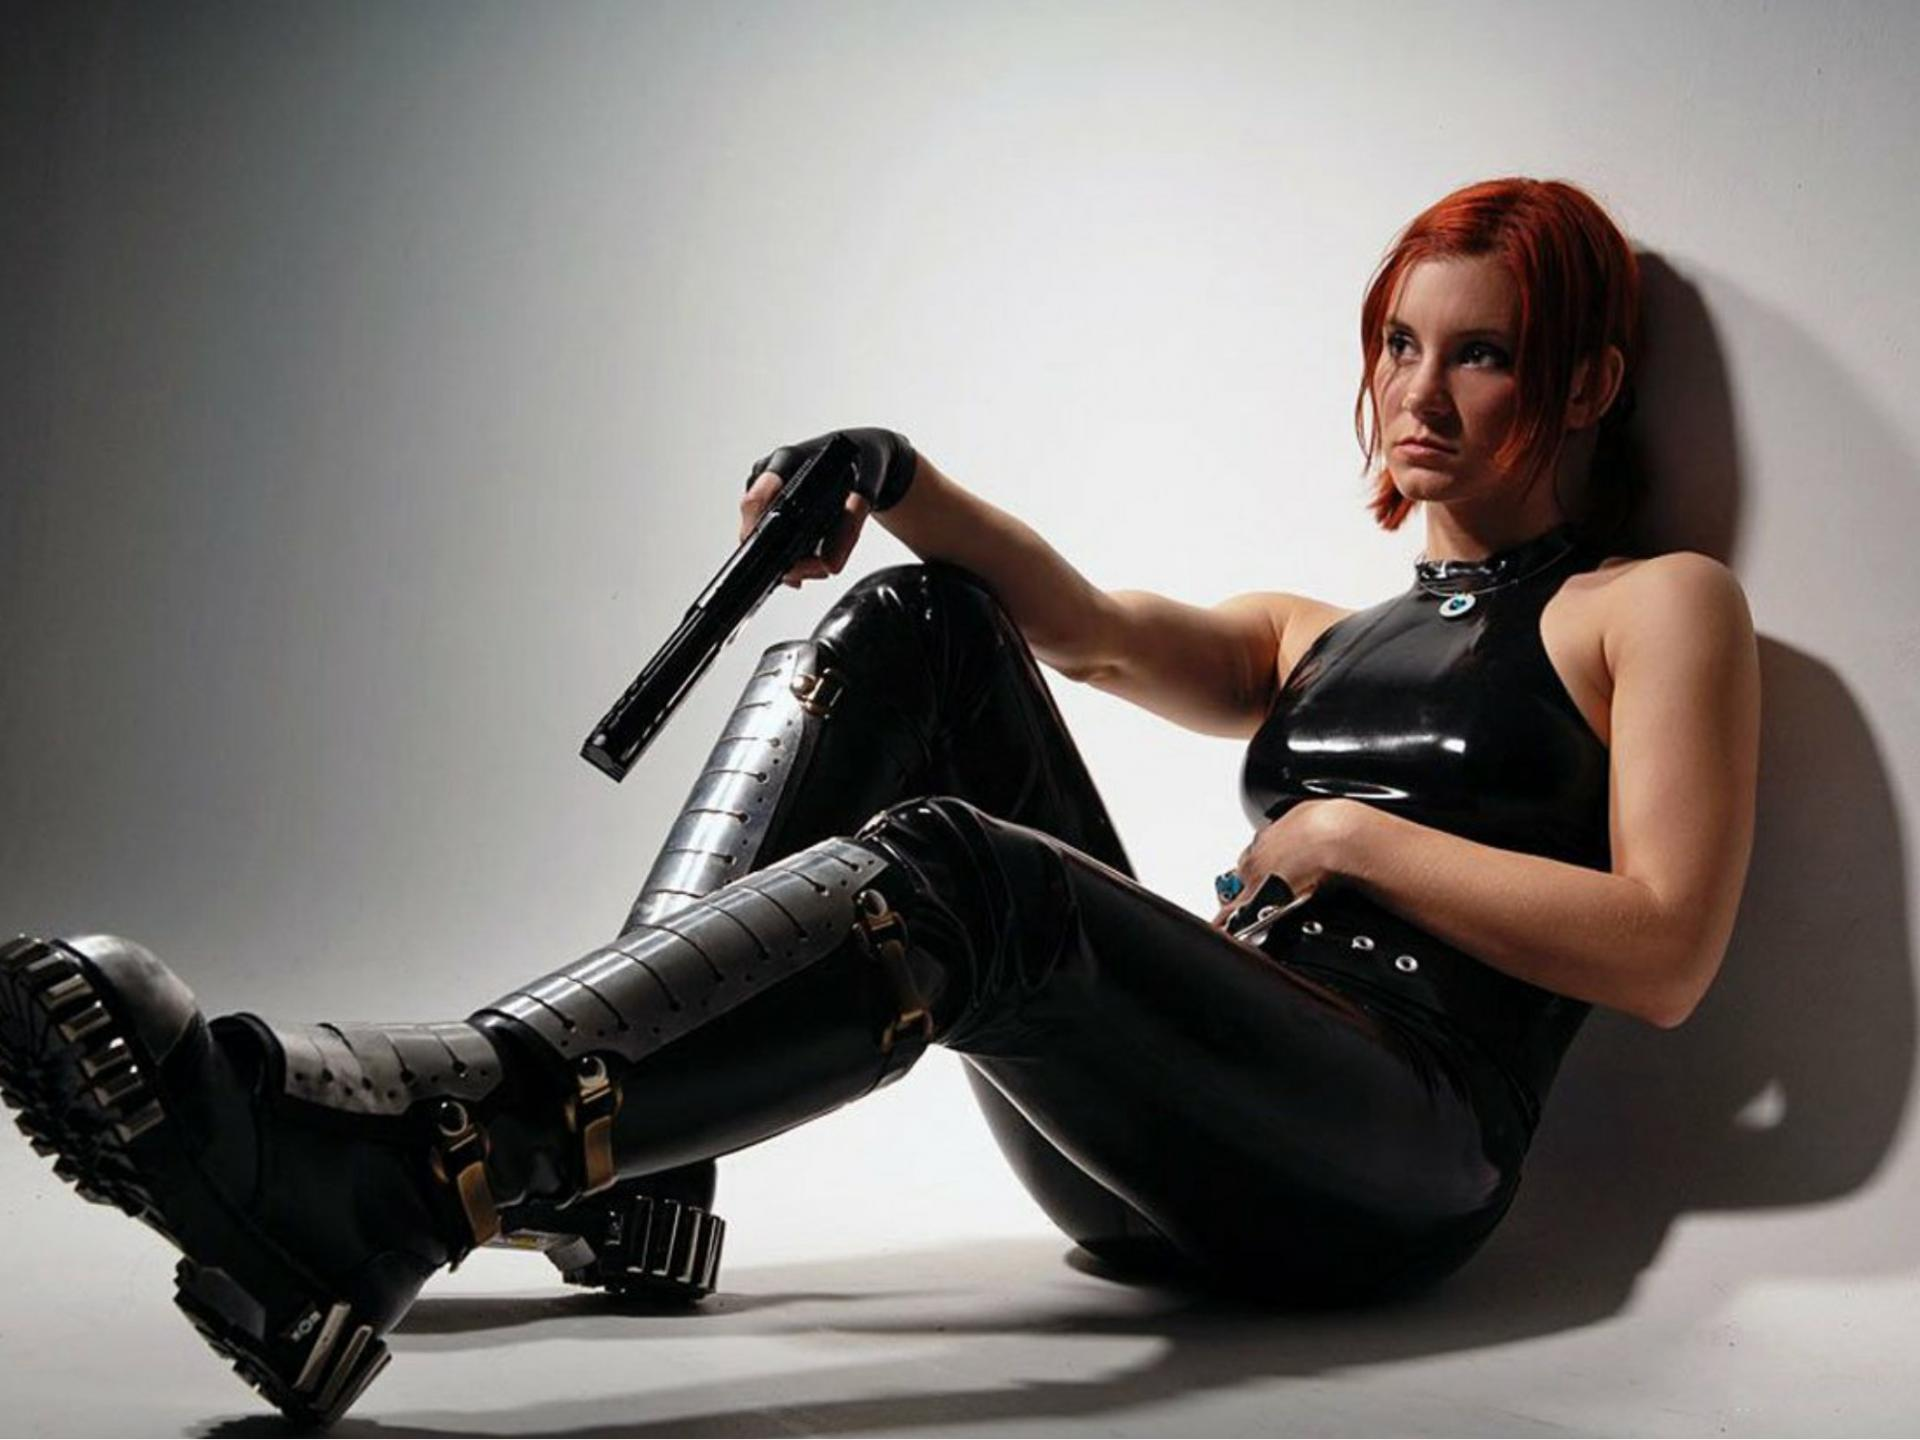 Sexy women with weapons